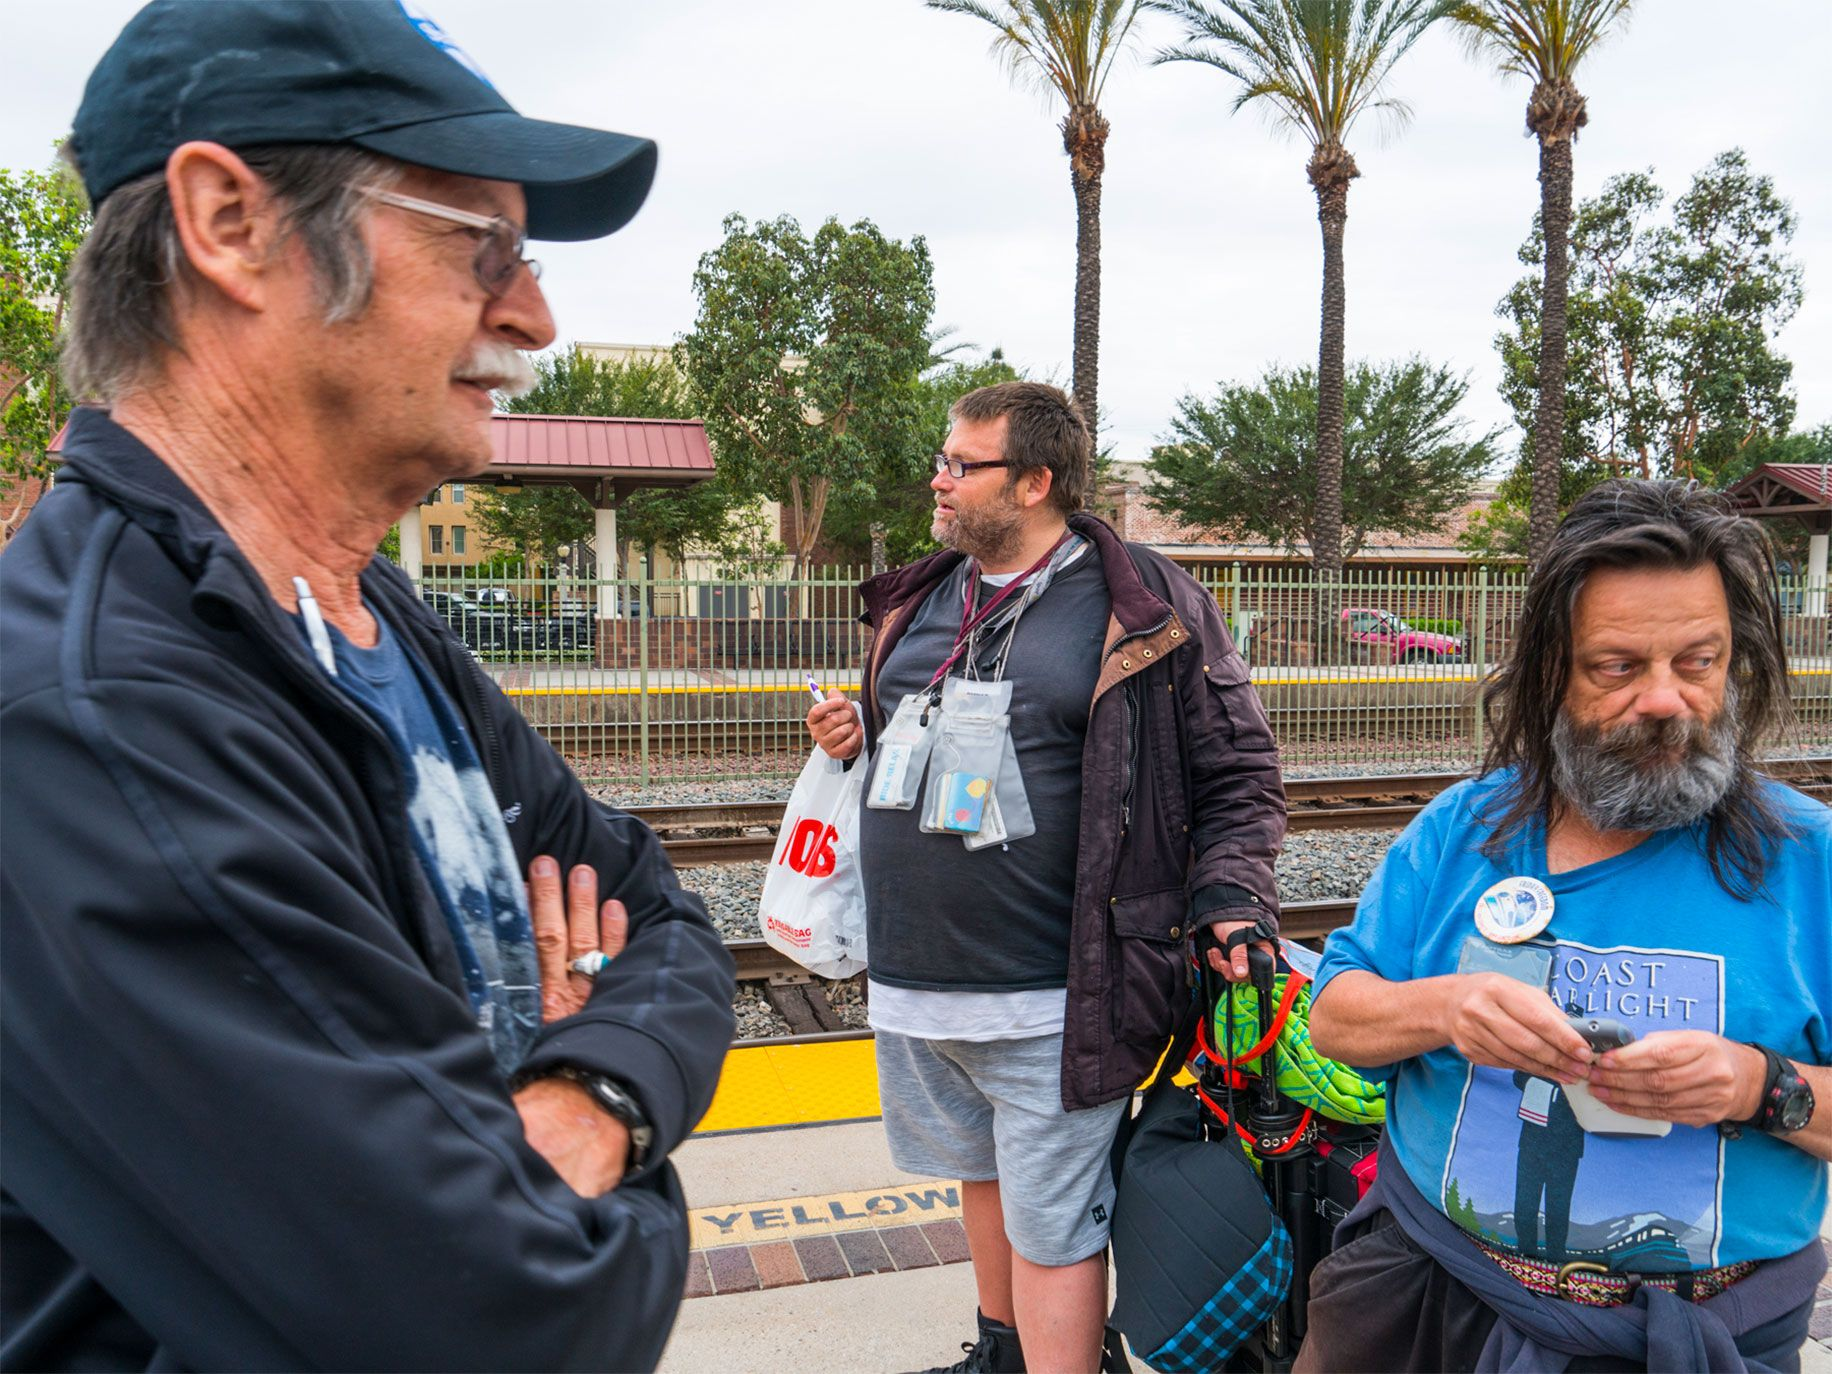 From left, railroad buffs David Aten, Peter Warner and Rick Ivonovitch wait by the tracks for the arrival of the Southwest Chief at the Amtrak station in Fullerton.